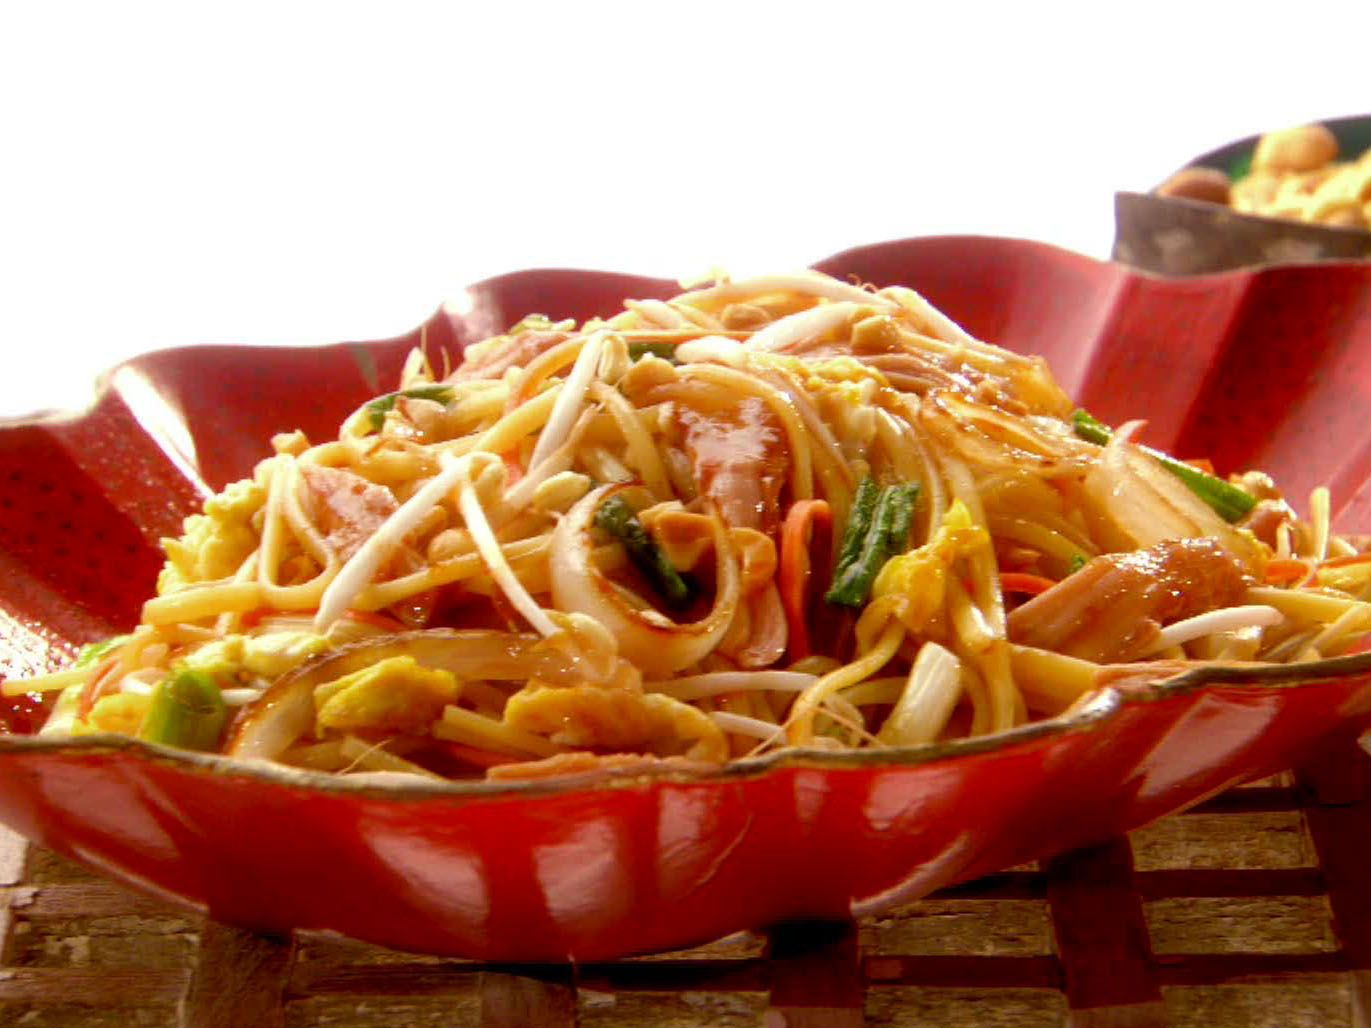 Turkey pad thai recipe thai recipes recipes and chicken tenderloins get this all star easy to follow food network turkey pad thai forumfinder Image collections